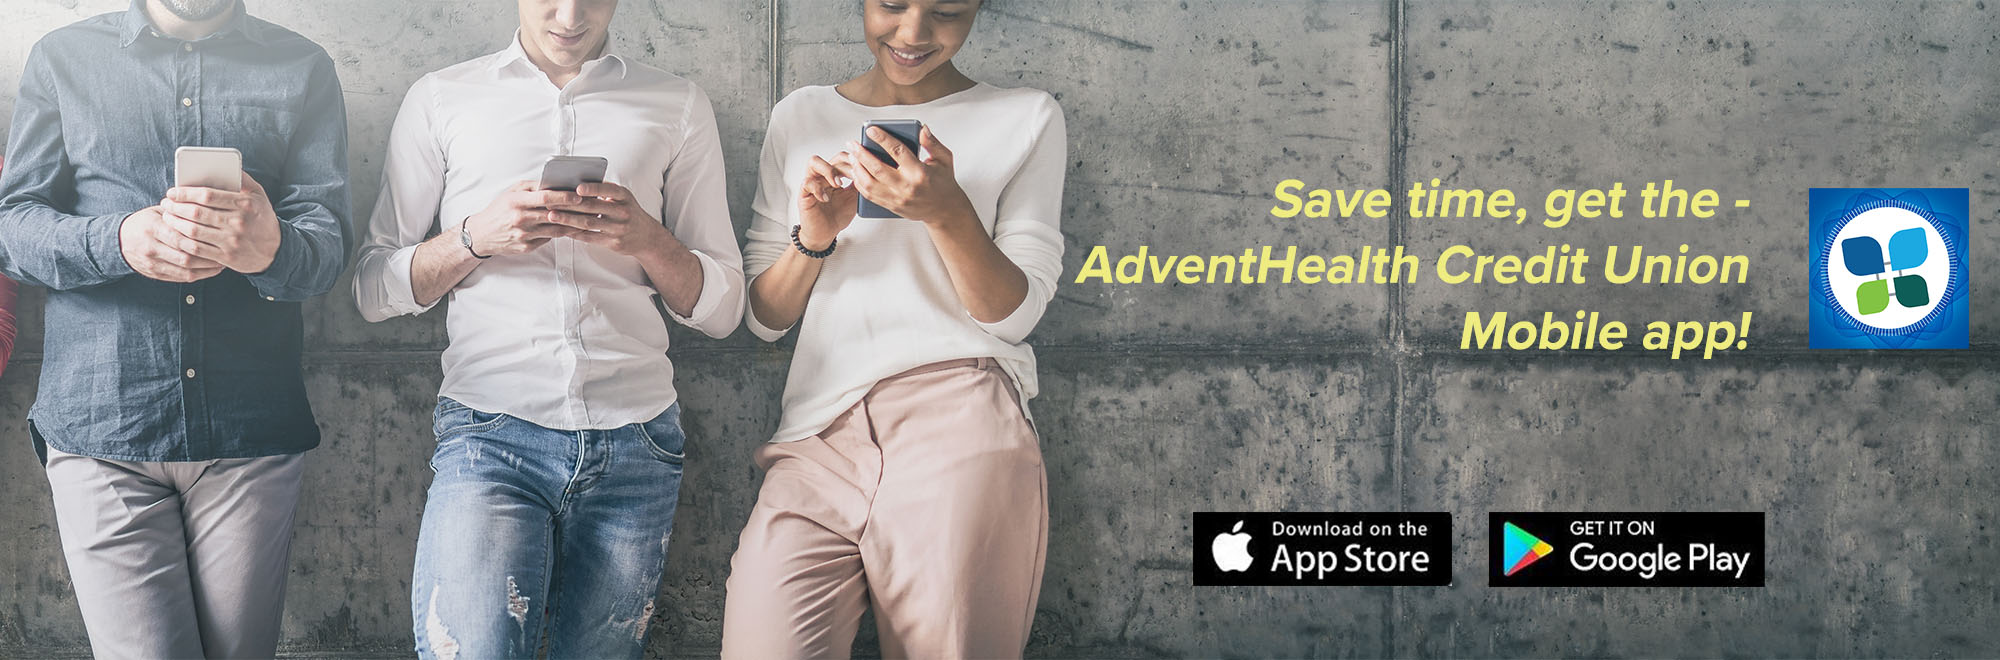 Search AdventHealth Credit Union in your App Store and download our mobile app